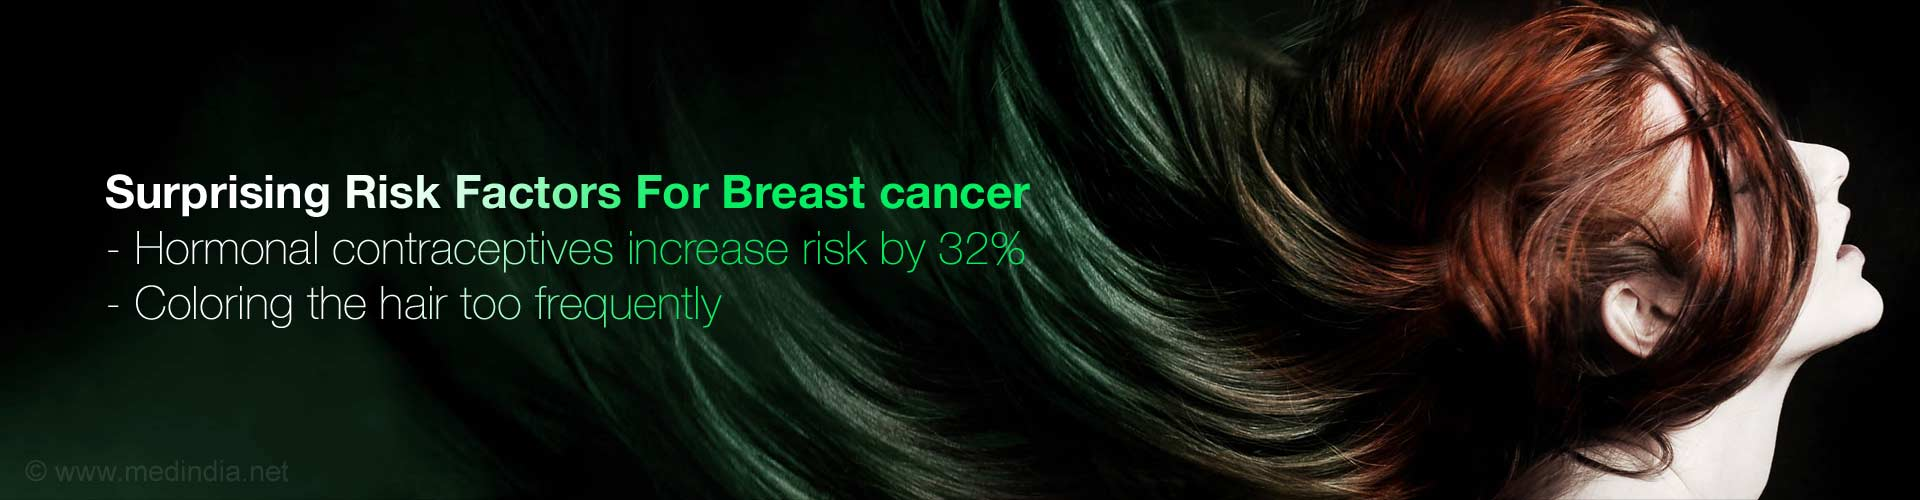 Hair Dyes, Contraceptives May Increase Breast Cancer Risk